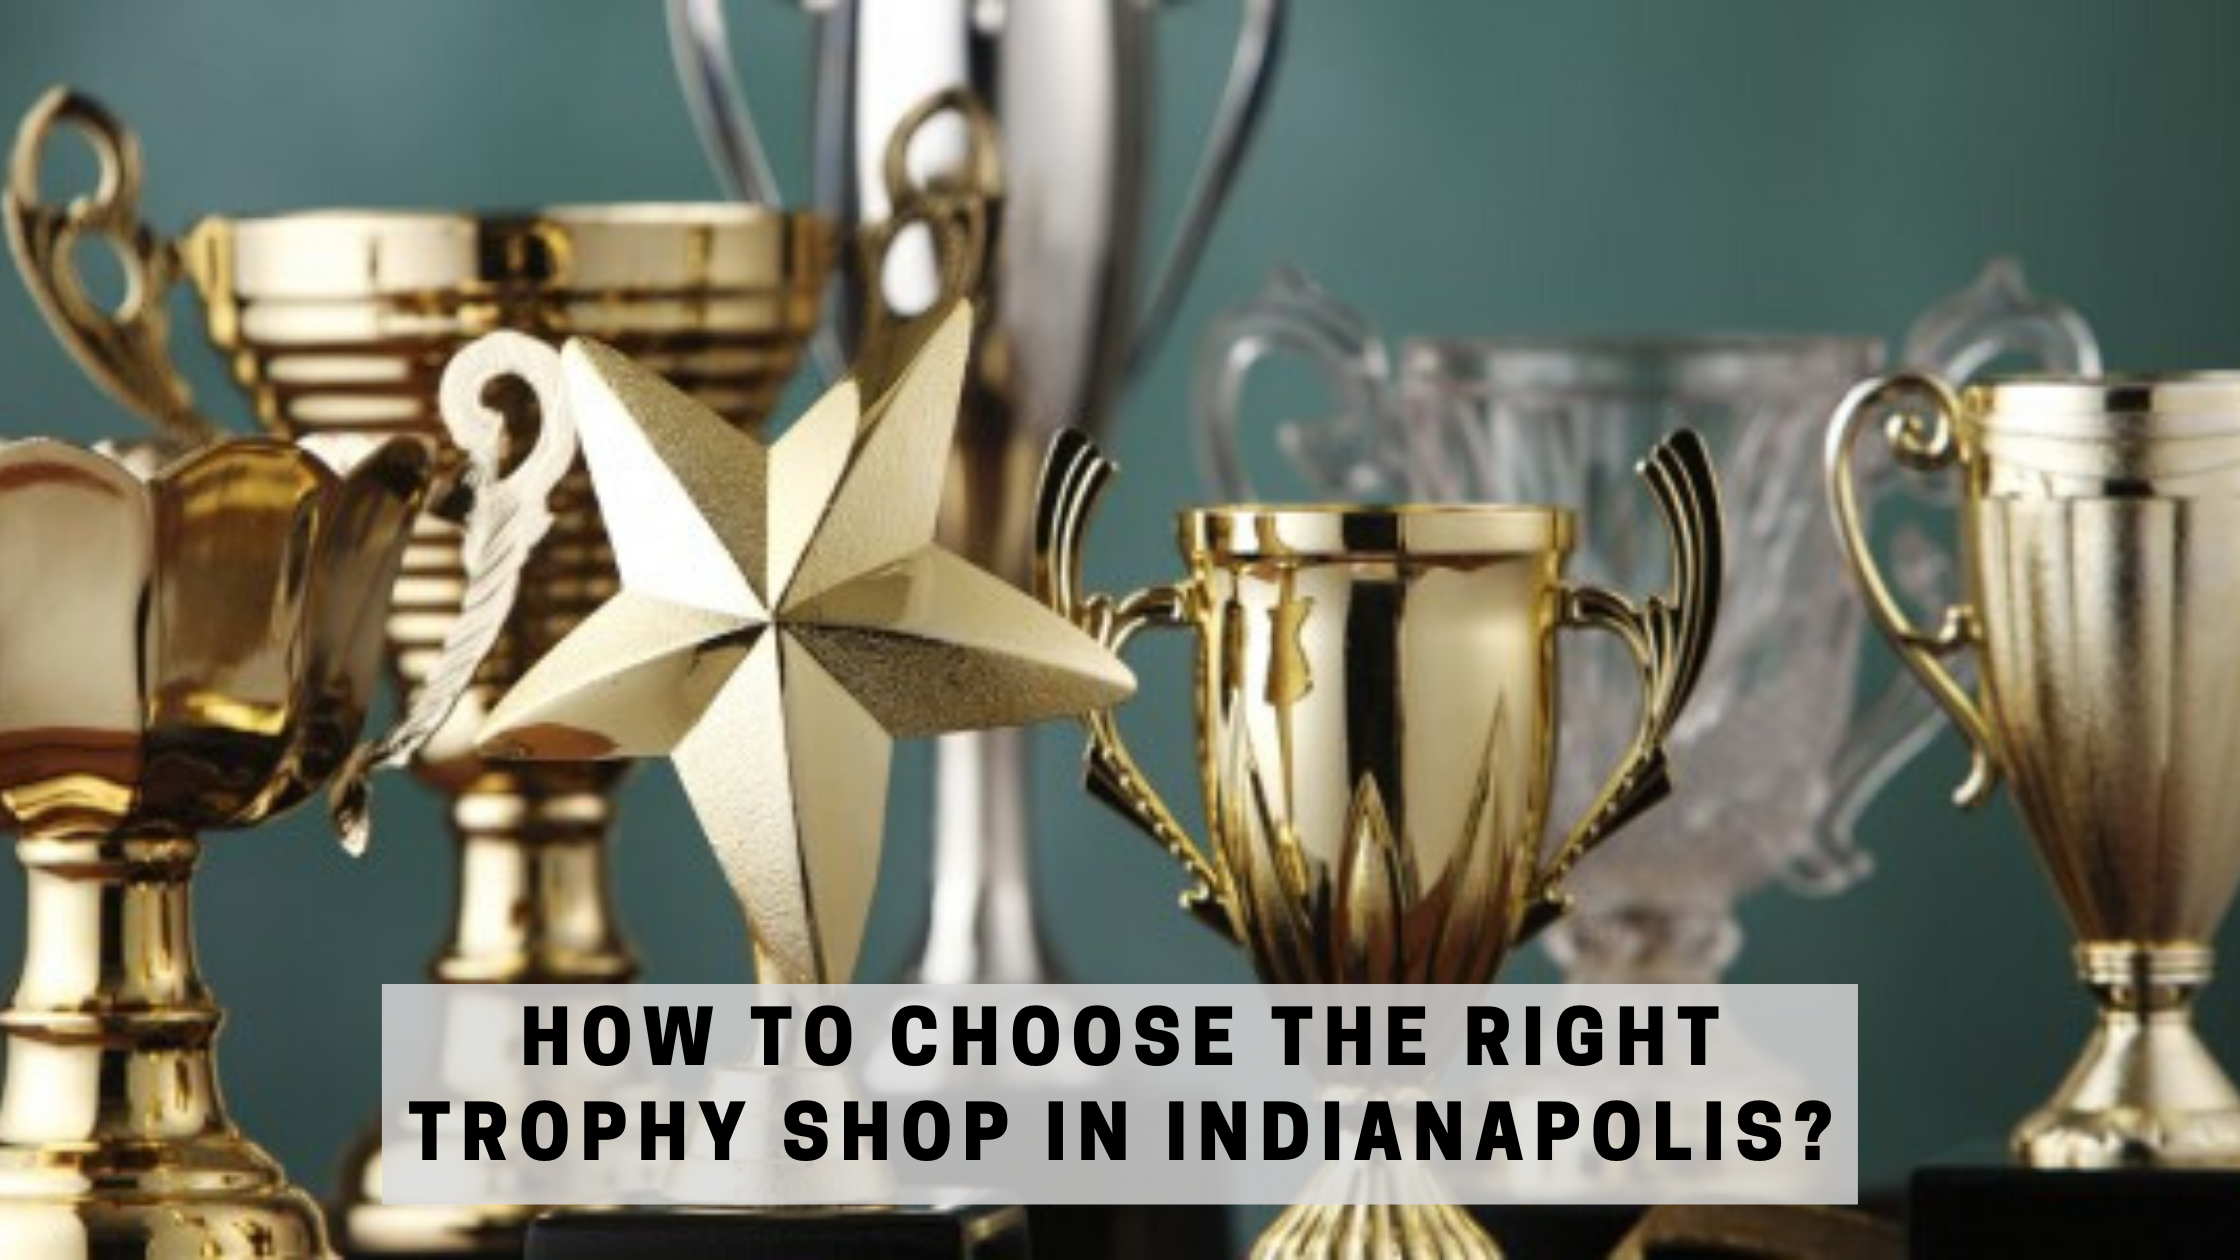 How to Choose the Right Trophy Shop in Indianapolis?